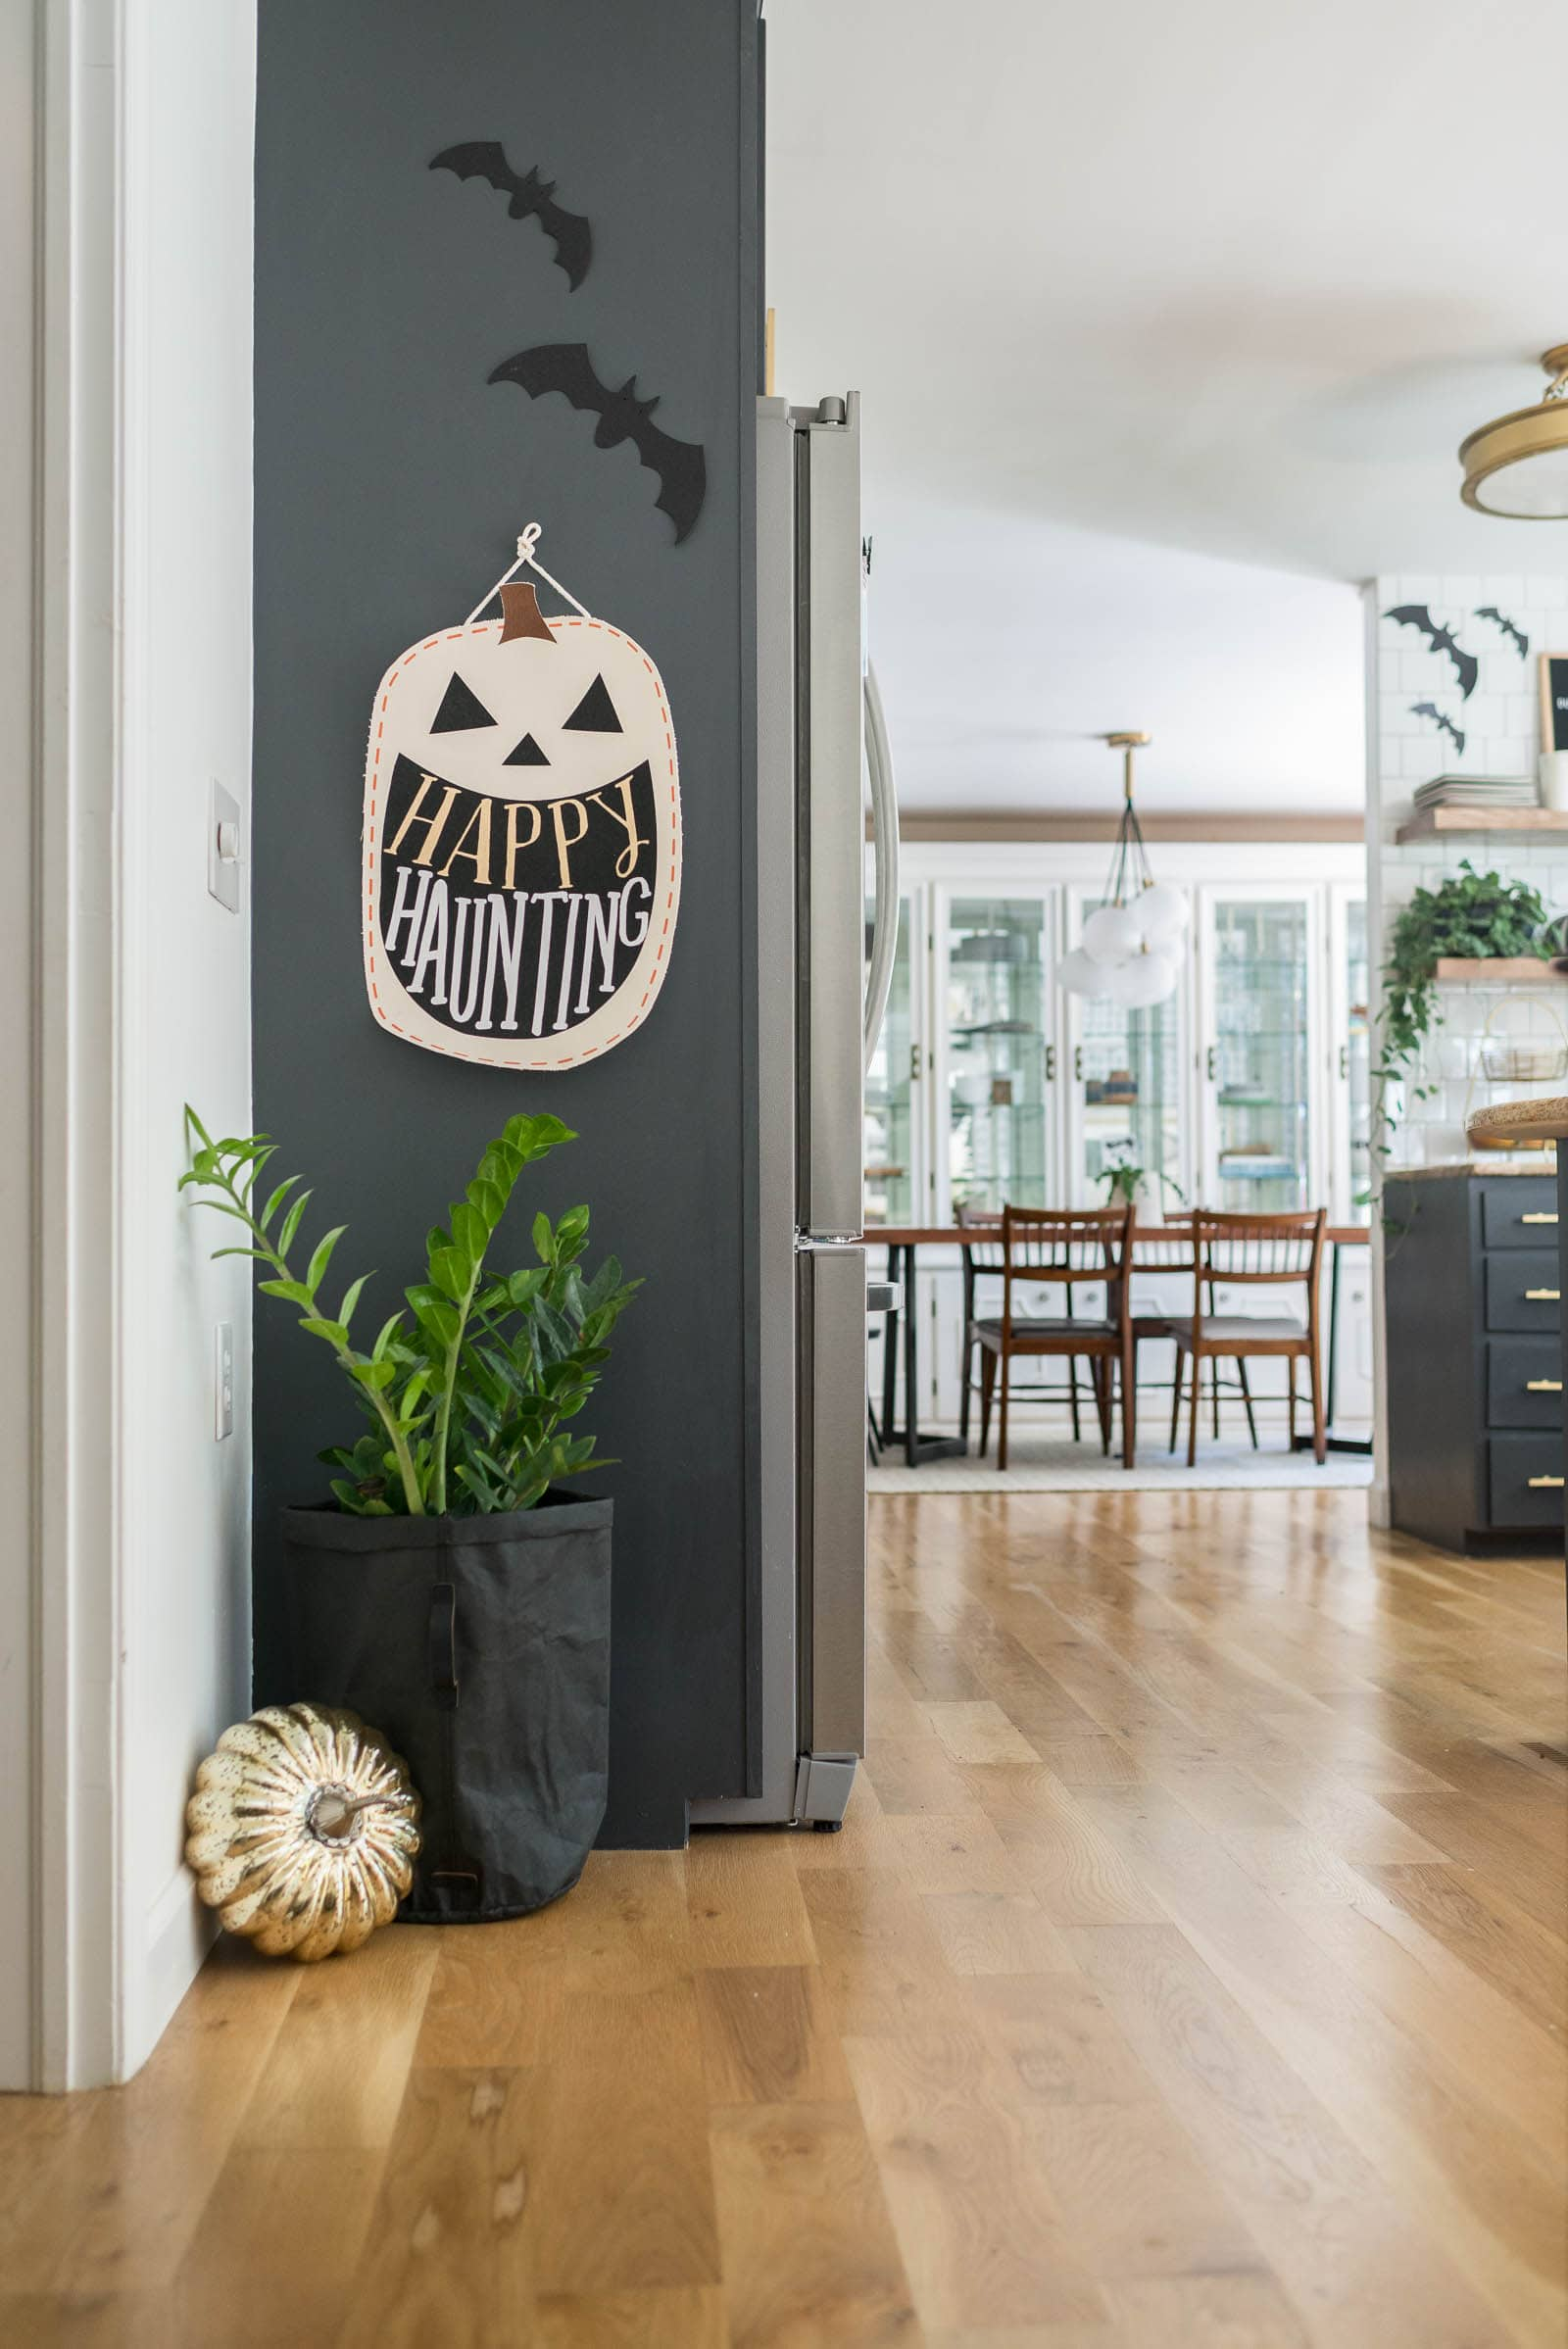 Pops of halloween in the kitchen